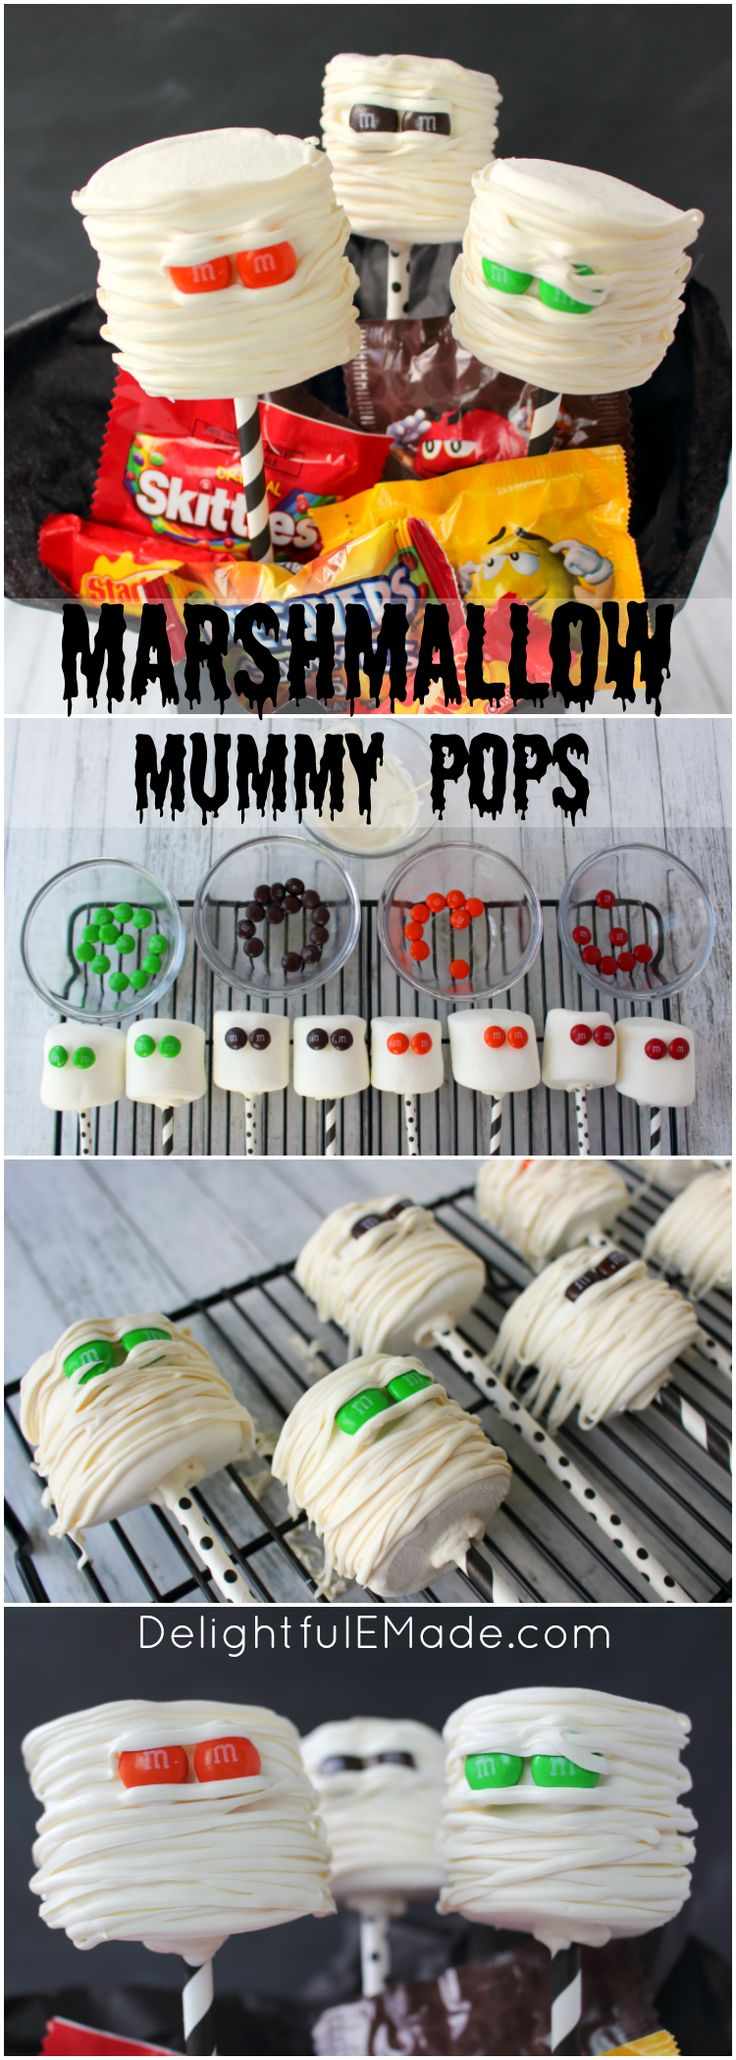 Let the Halloween BOO'ing begin! Have some friends, family, or neighbors that you would love to share some Halloween spirit with? Make them these fun Marshmallow Mummy Pops and share them in these fun and simple Halloween BOO Bags!